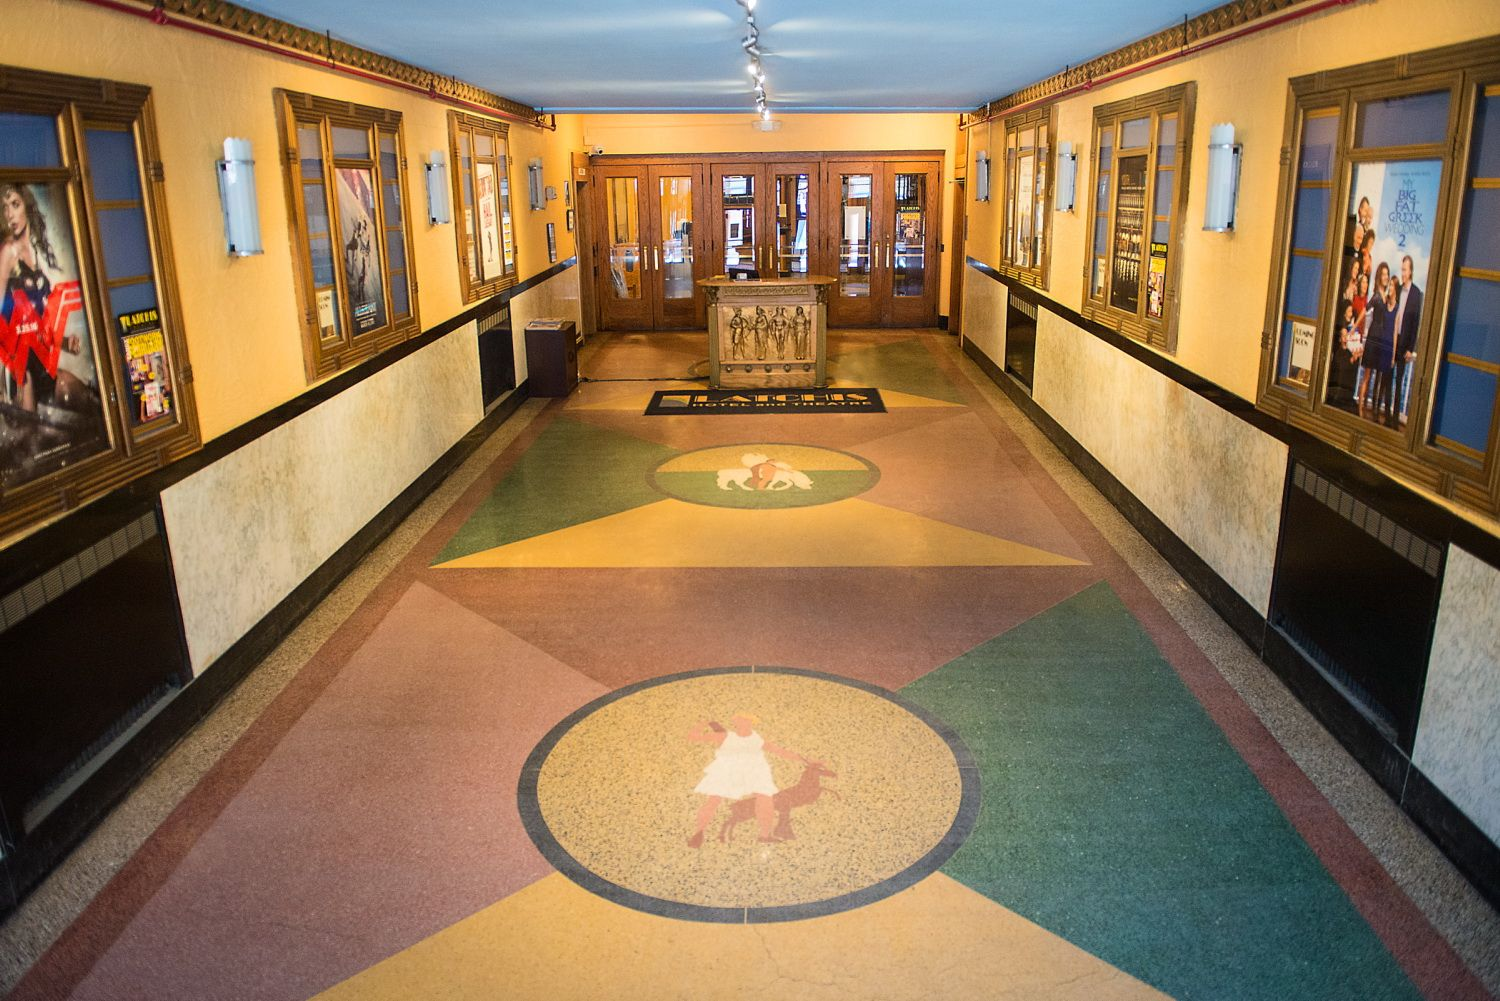 Pretty Cool Story About How Terrazzo Flooring Depicts A